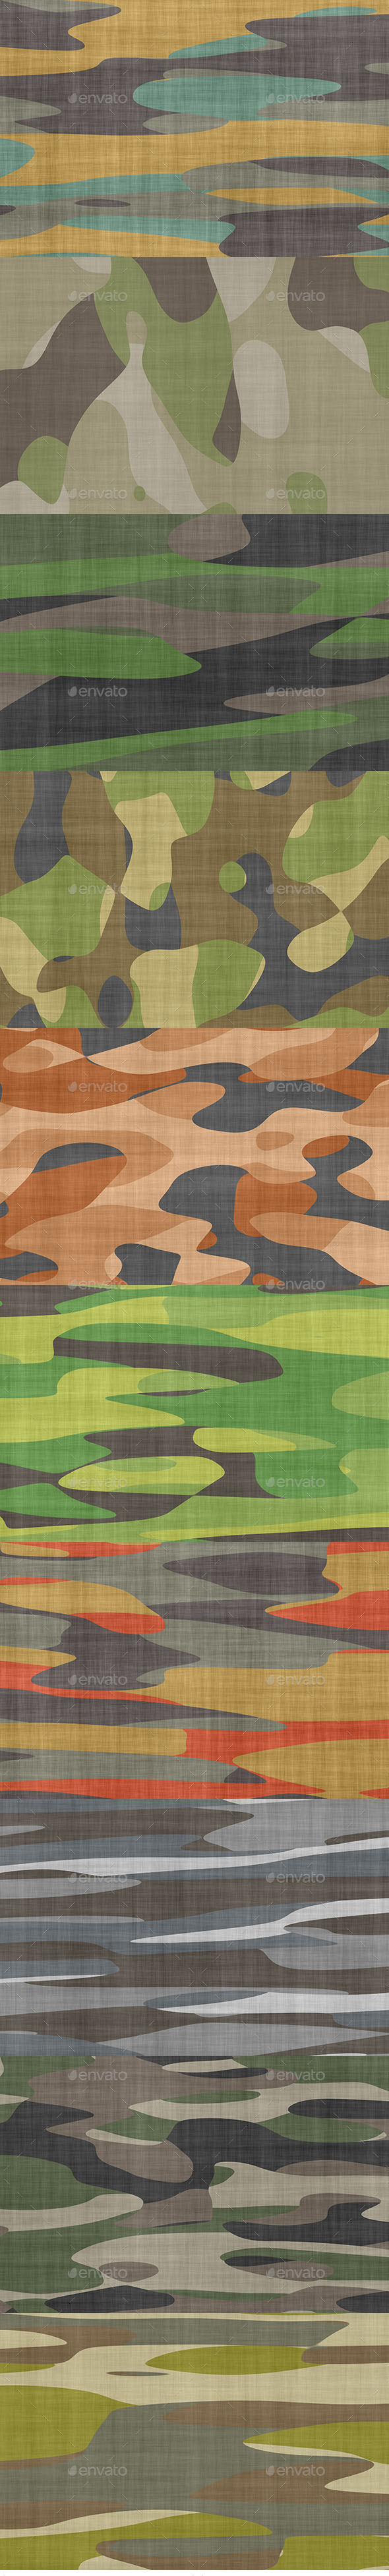 GraphicRiver Camouflage Backgrounds 10224434